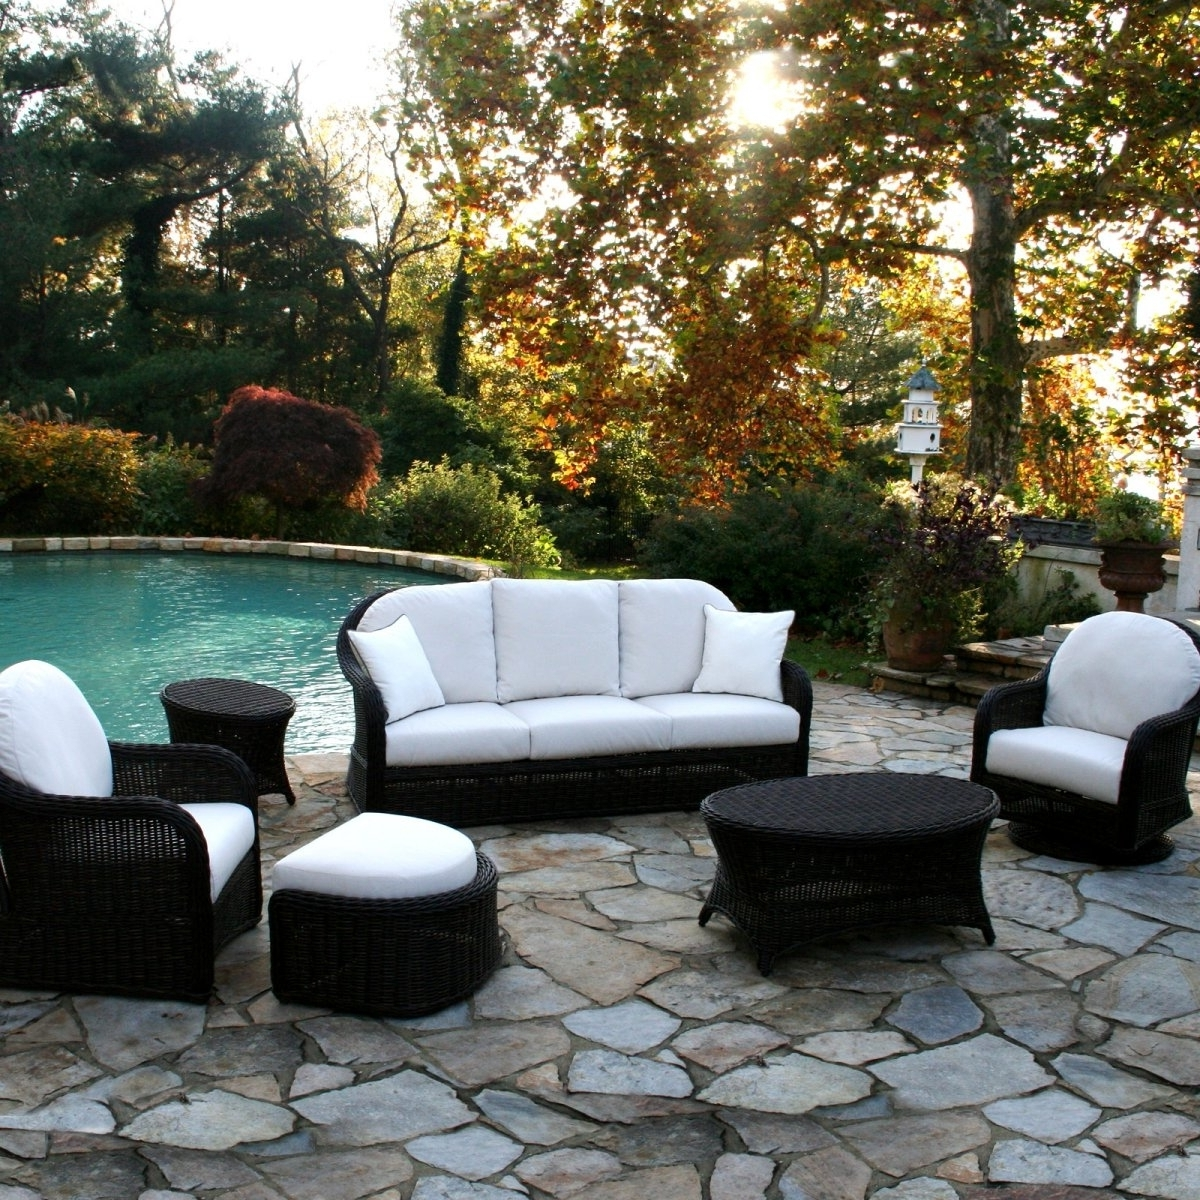 Widely Used Patio Conversation Sets With Swivel Chairs Inside Conversation Chairs Patio Furniture Lowes Patio Conversation Sets (View 10 of 20)